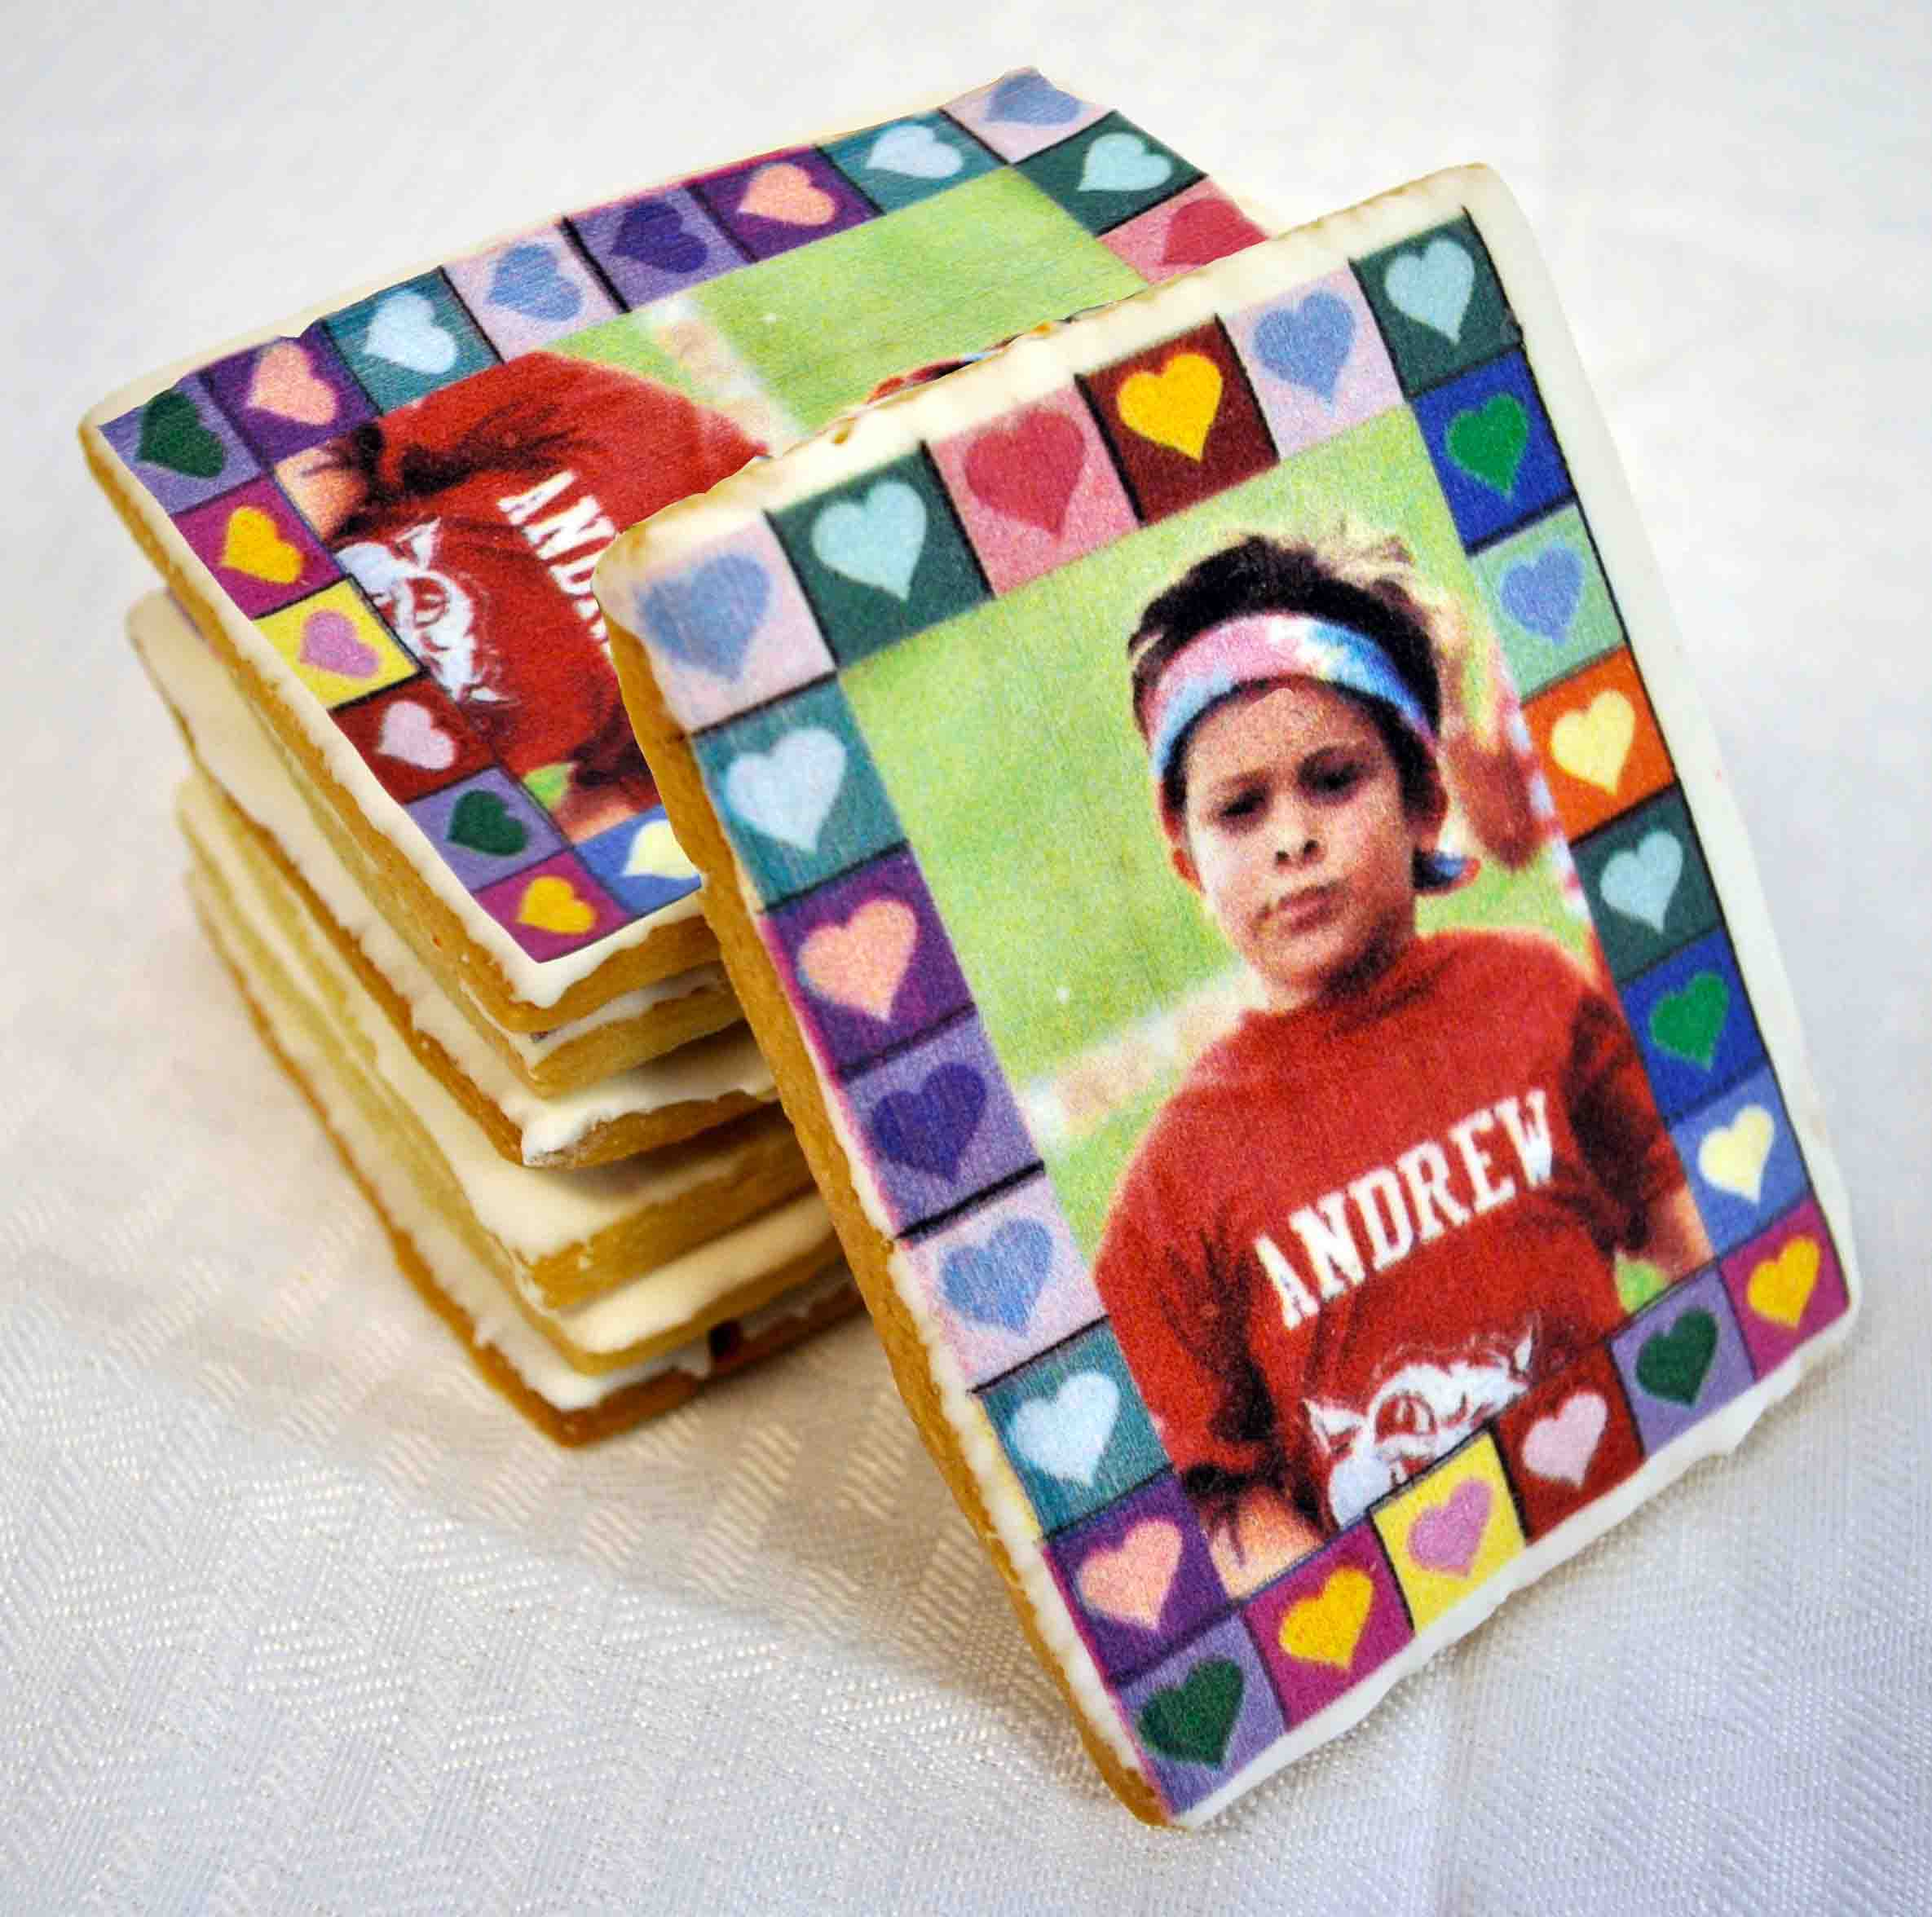 photo cookies, custom cookies, personalized cookies, picture cookies, cookies with a photo